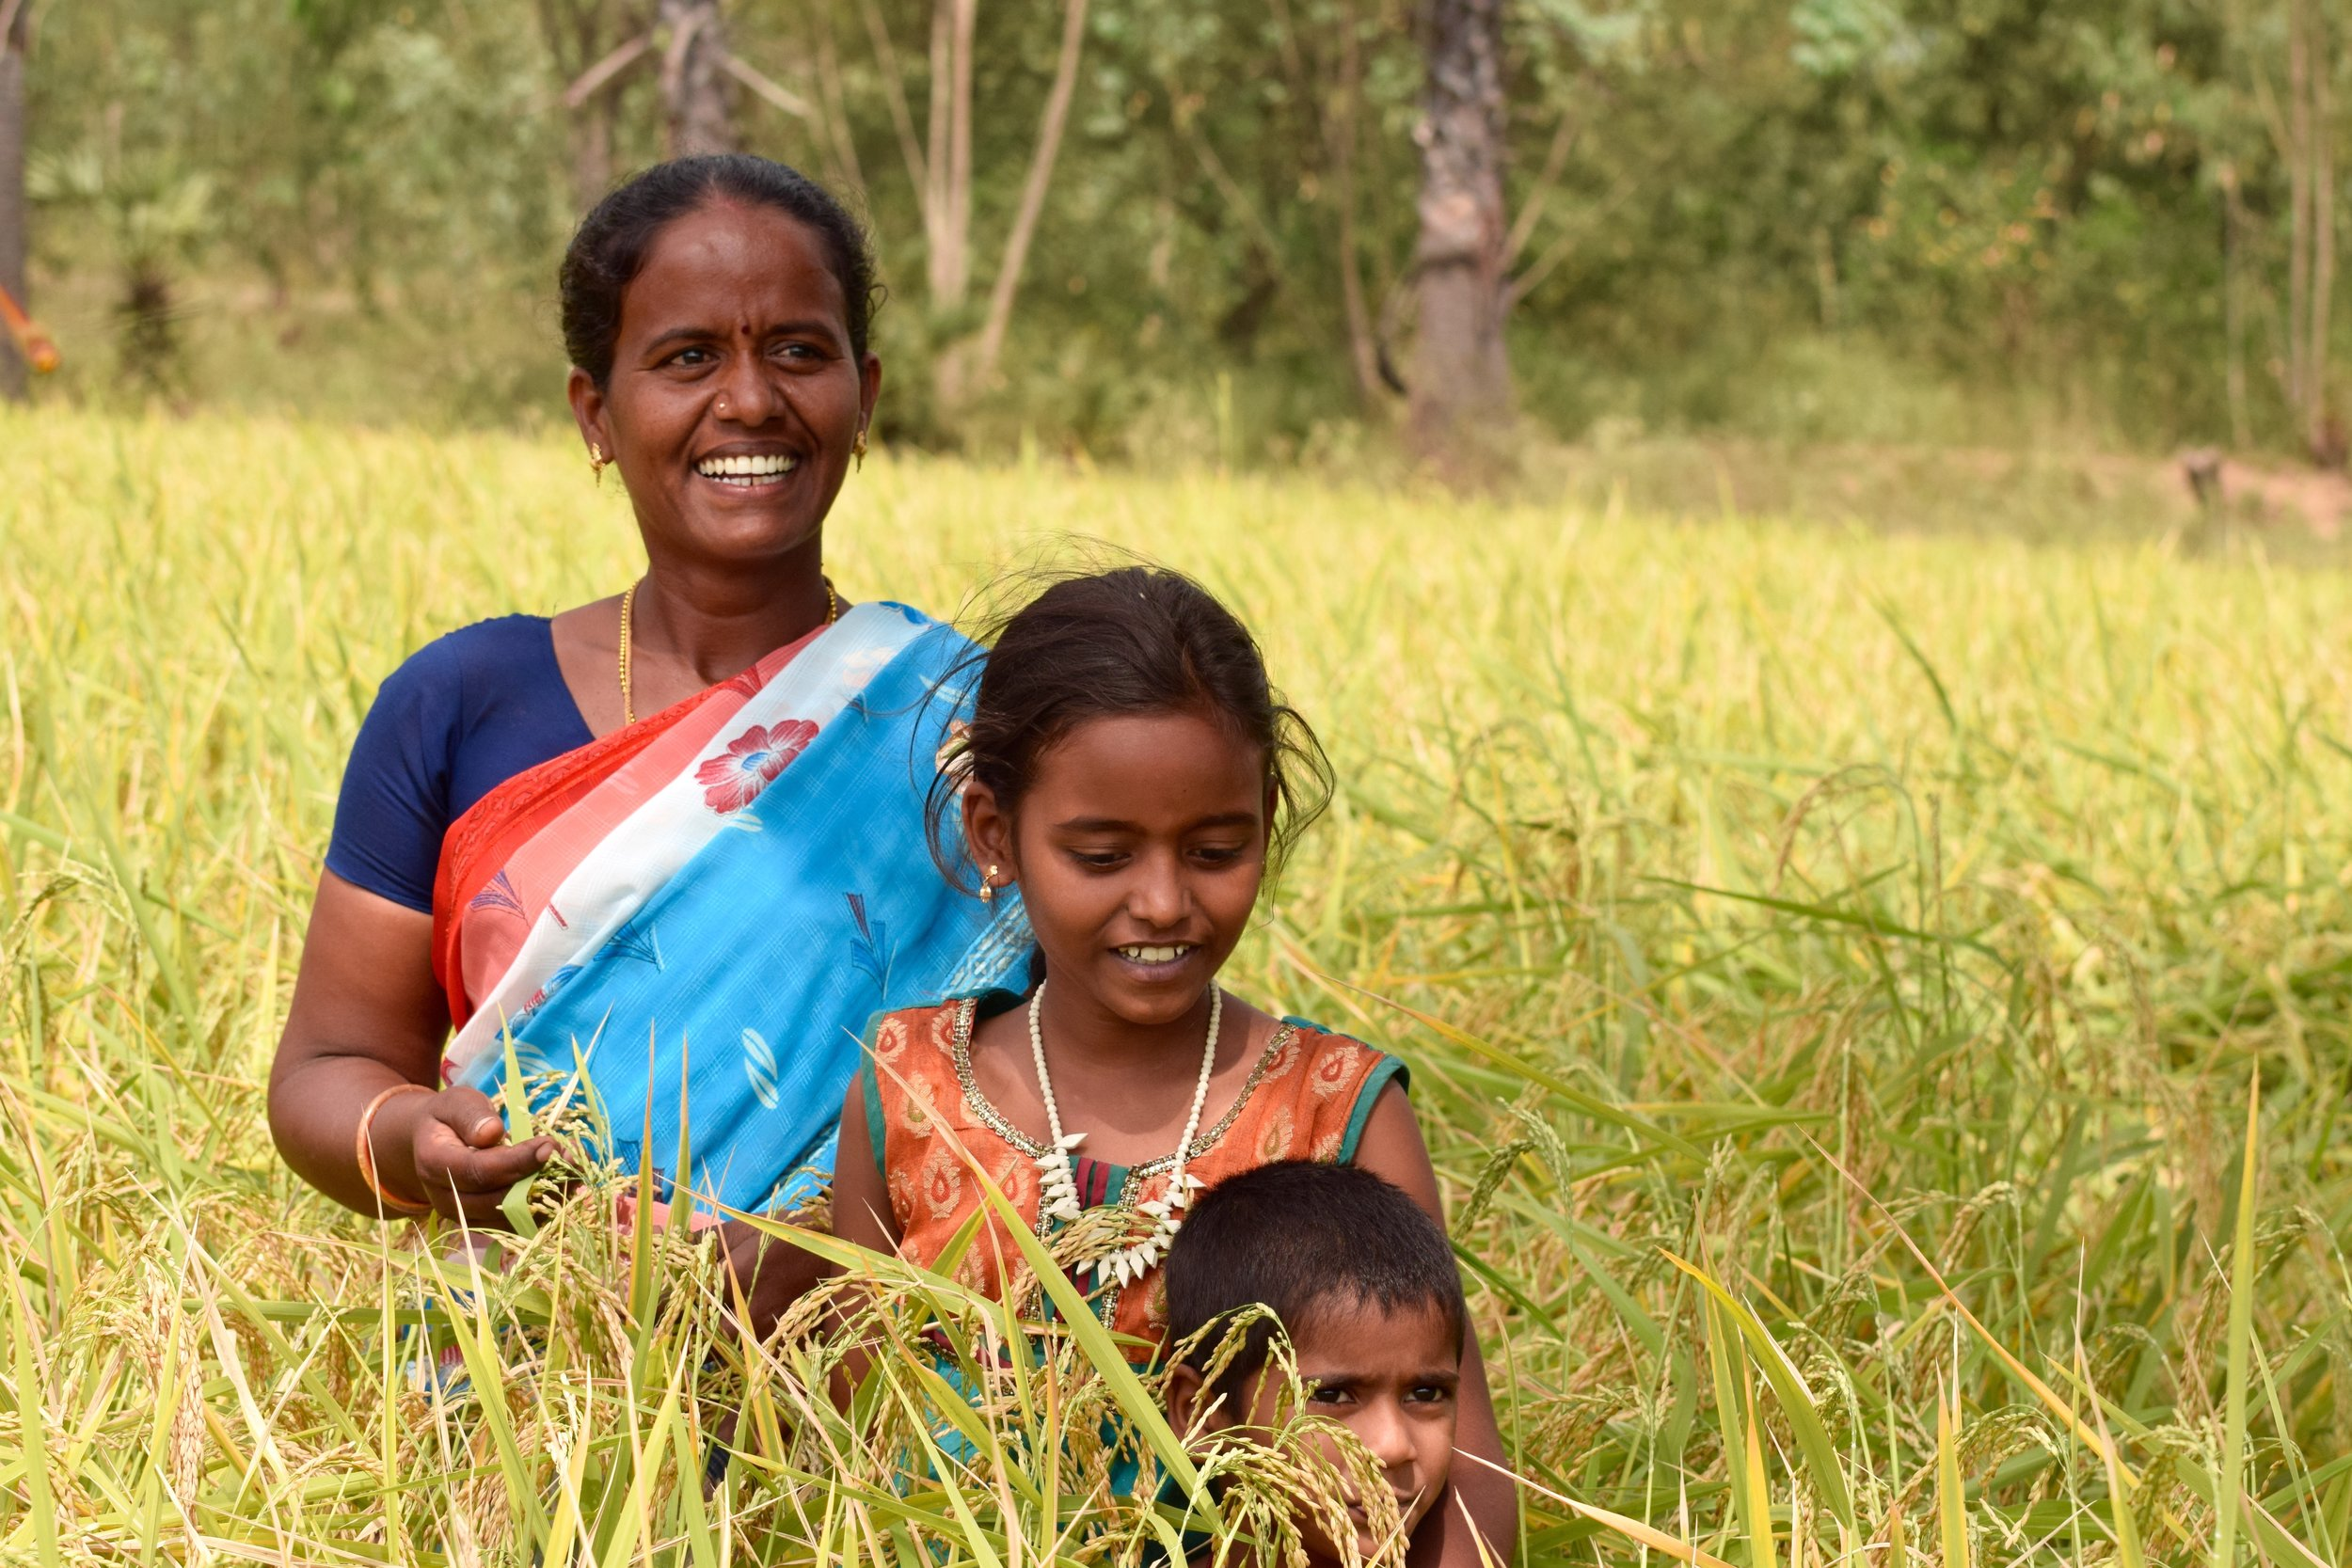 Site Visit 19722 India Dhana Laxmi and her Daughters in field.jpg